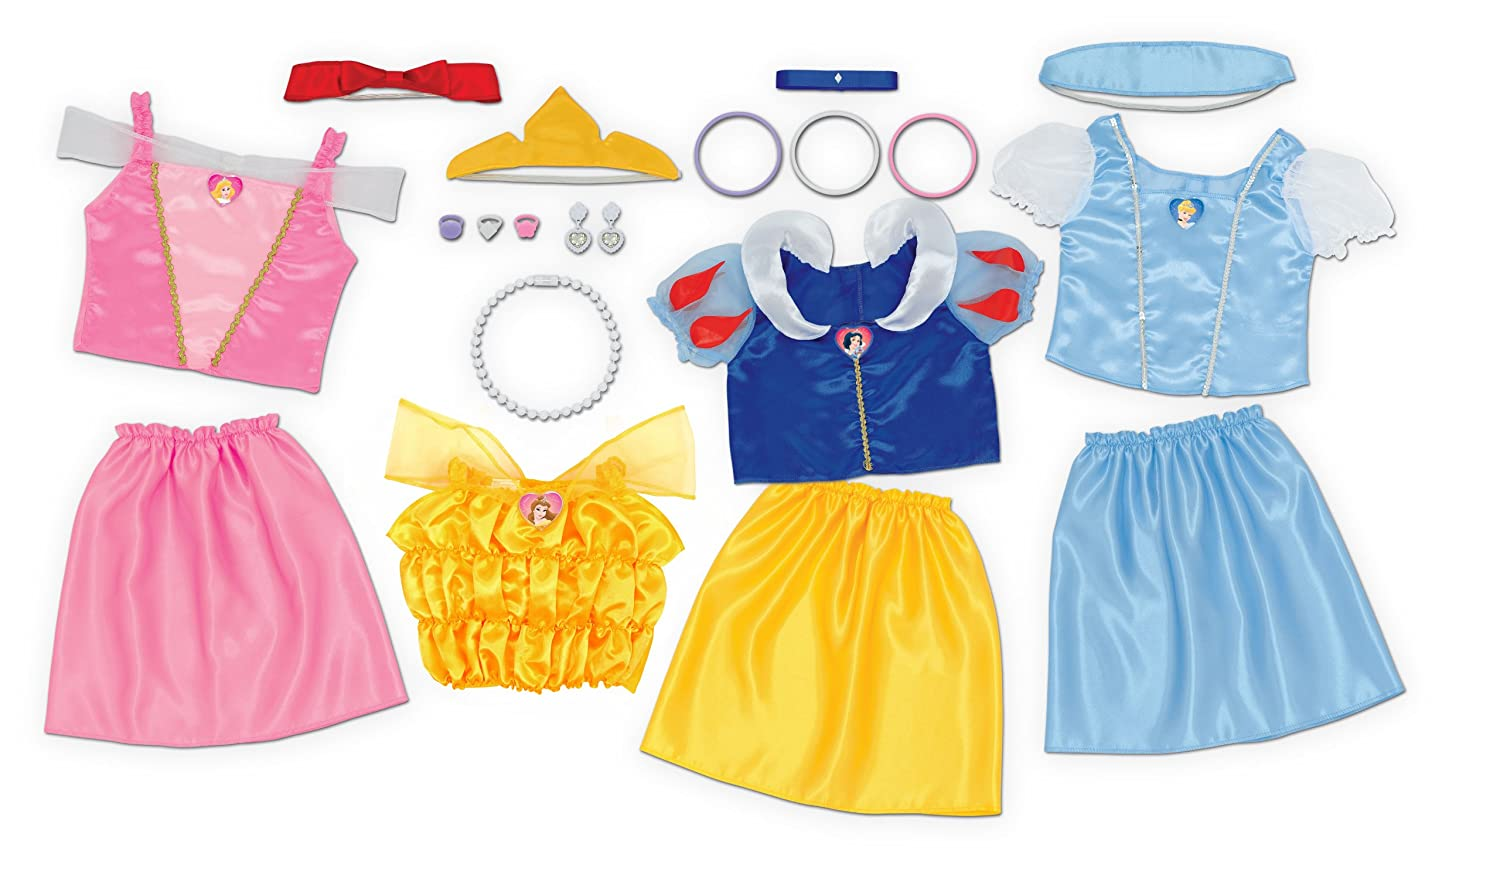 Disney Princess Dress Up Outfits